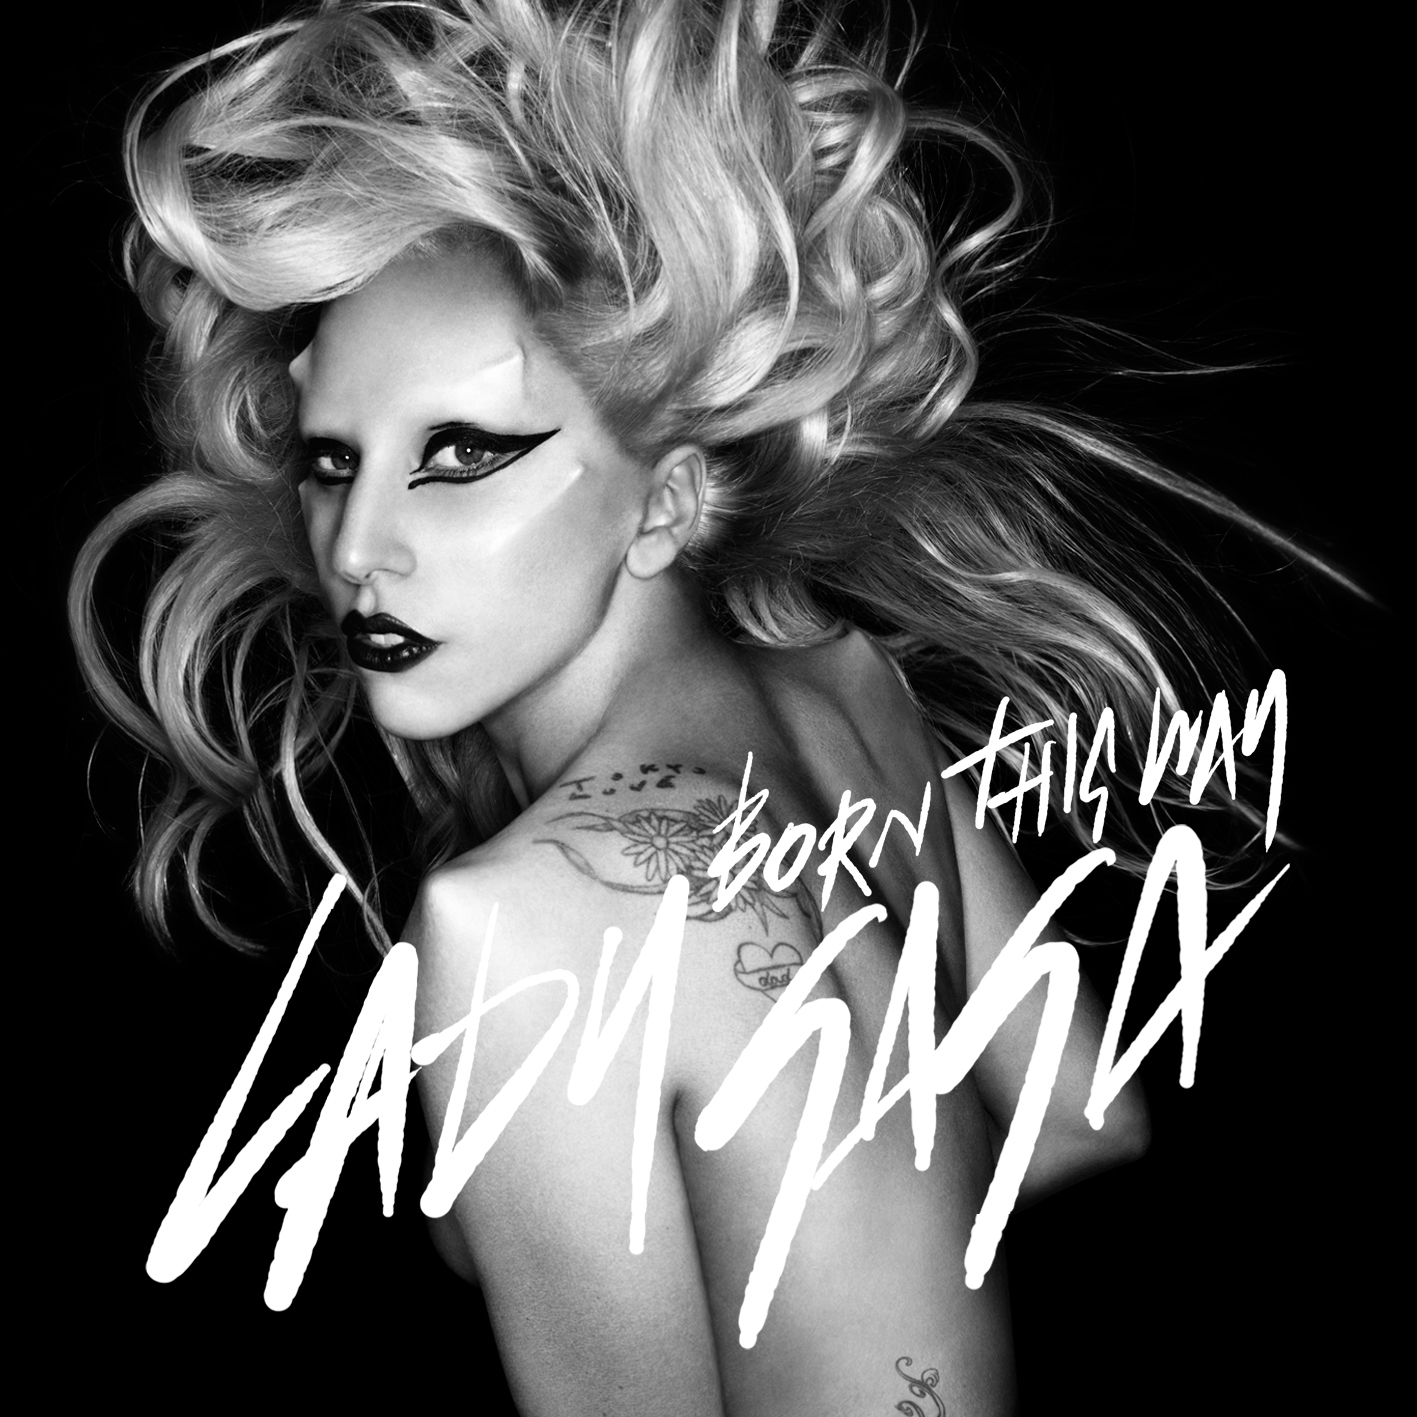 Lady Gaga's Born This Way cover